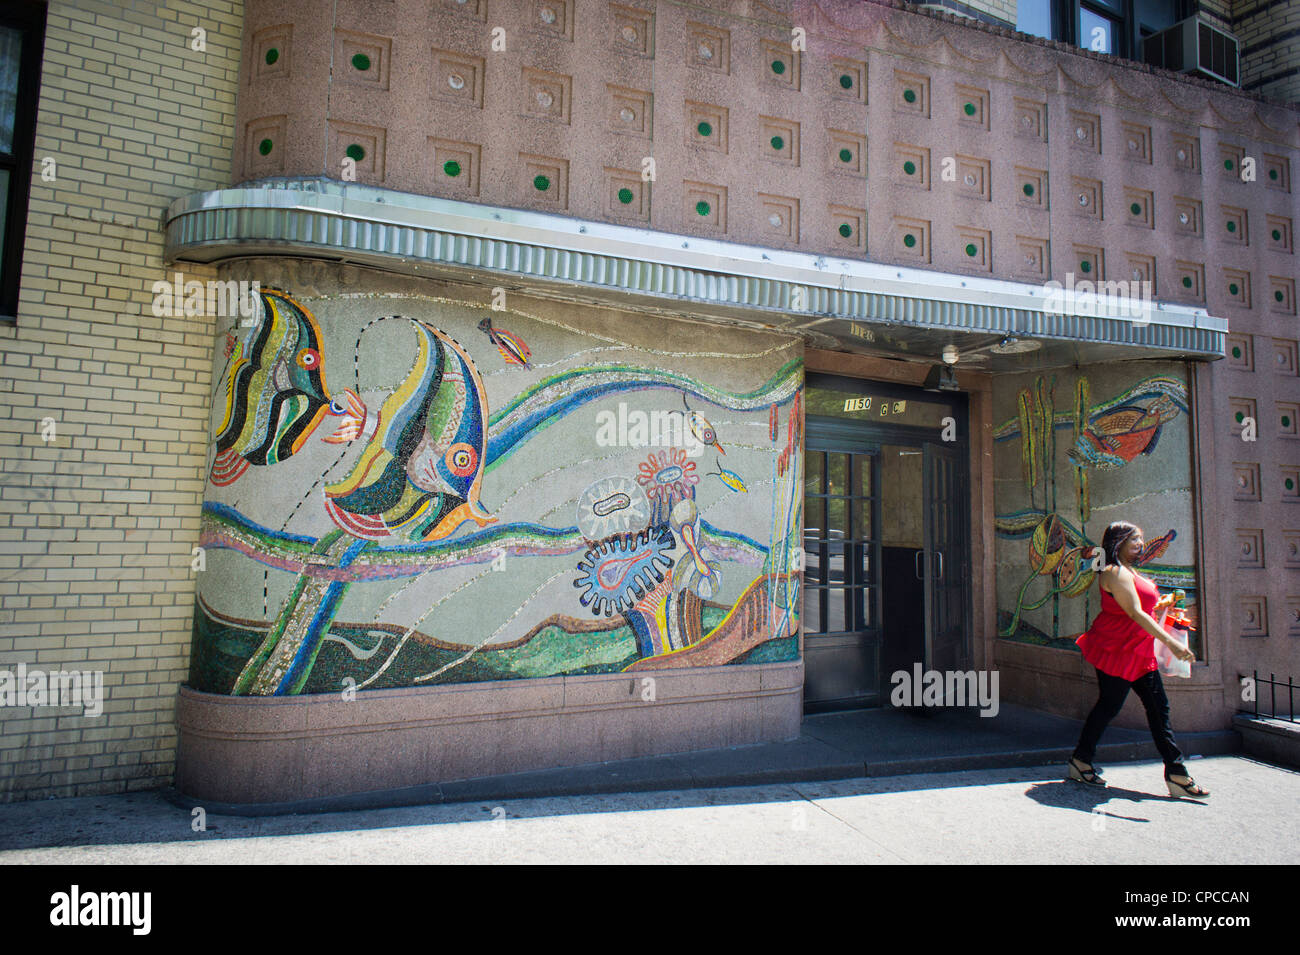 Mosaic Mural Adorns The Entrance Of An Art Deco Art